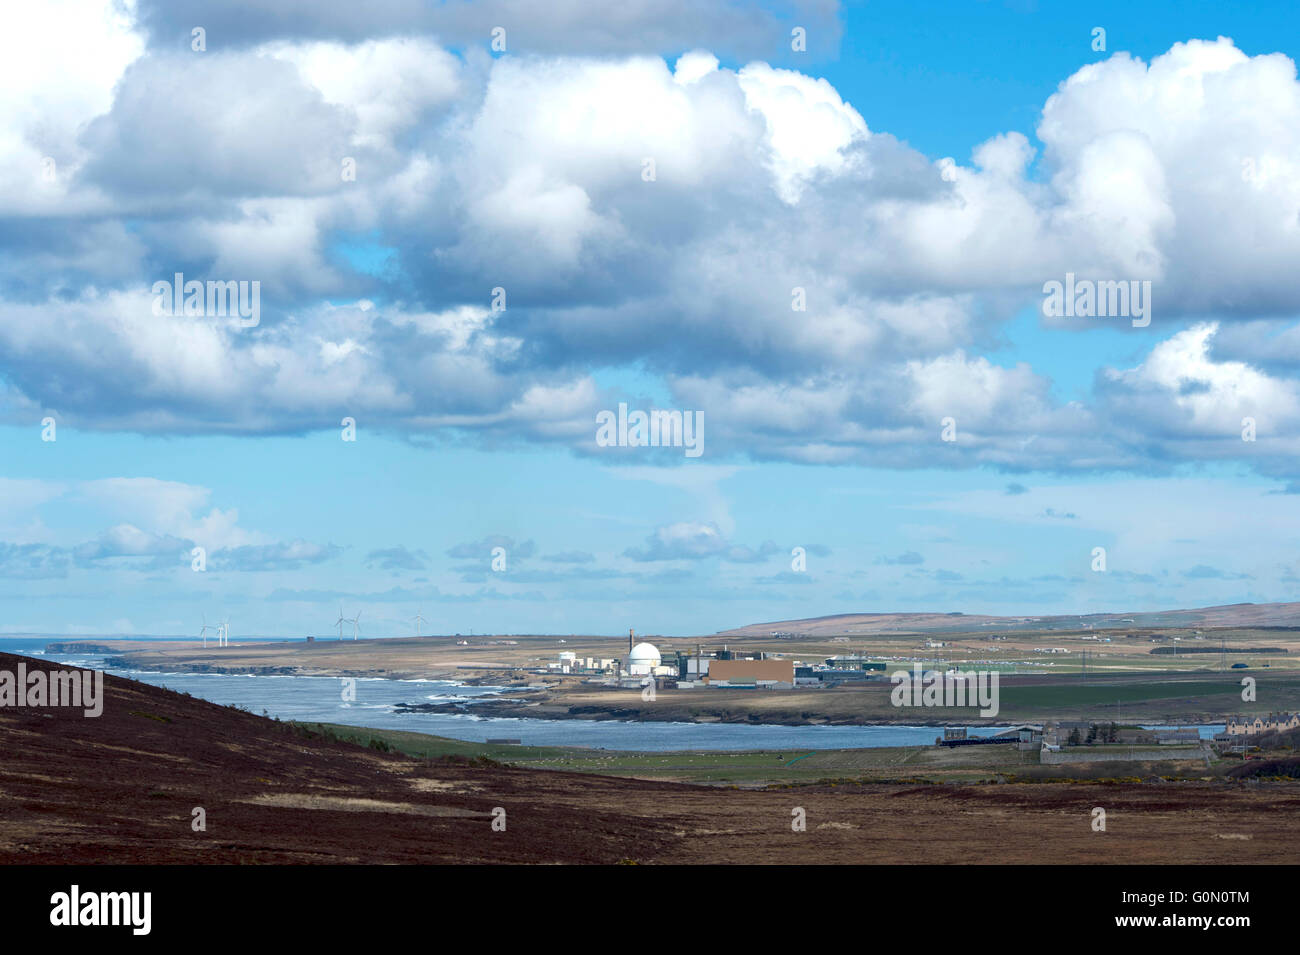 28/04/2016, A view of the former Dounreay Nuclear Power Station, Reay, Caithness, Scotland UK. - Stock Image